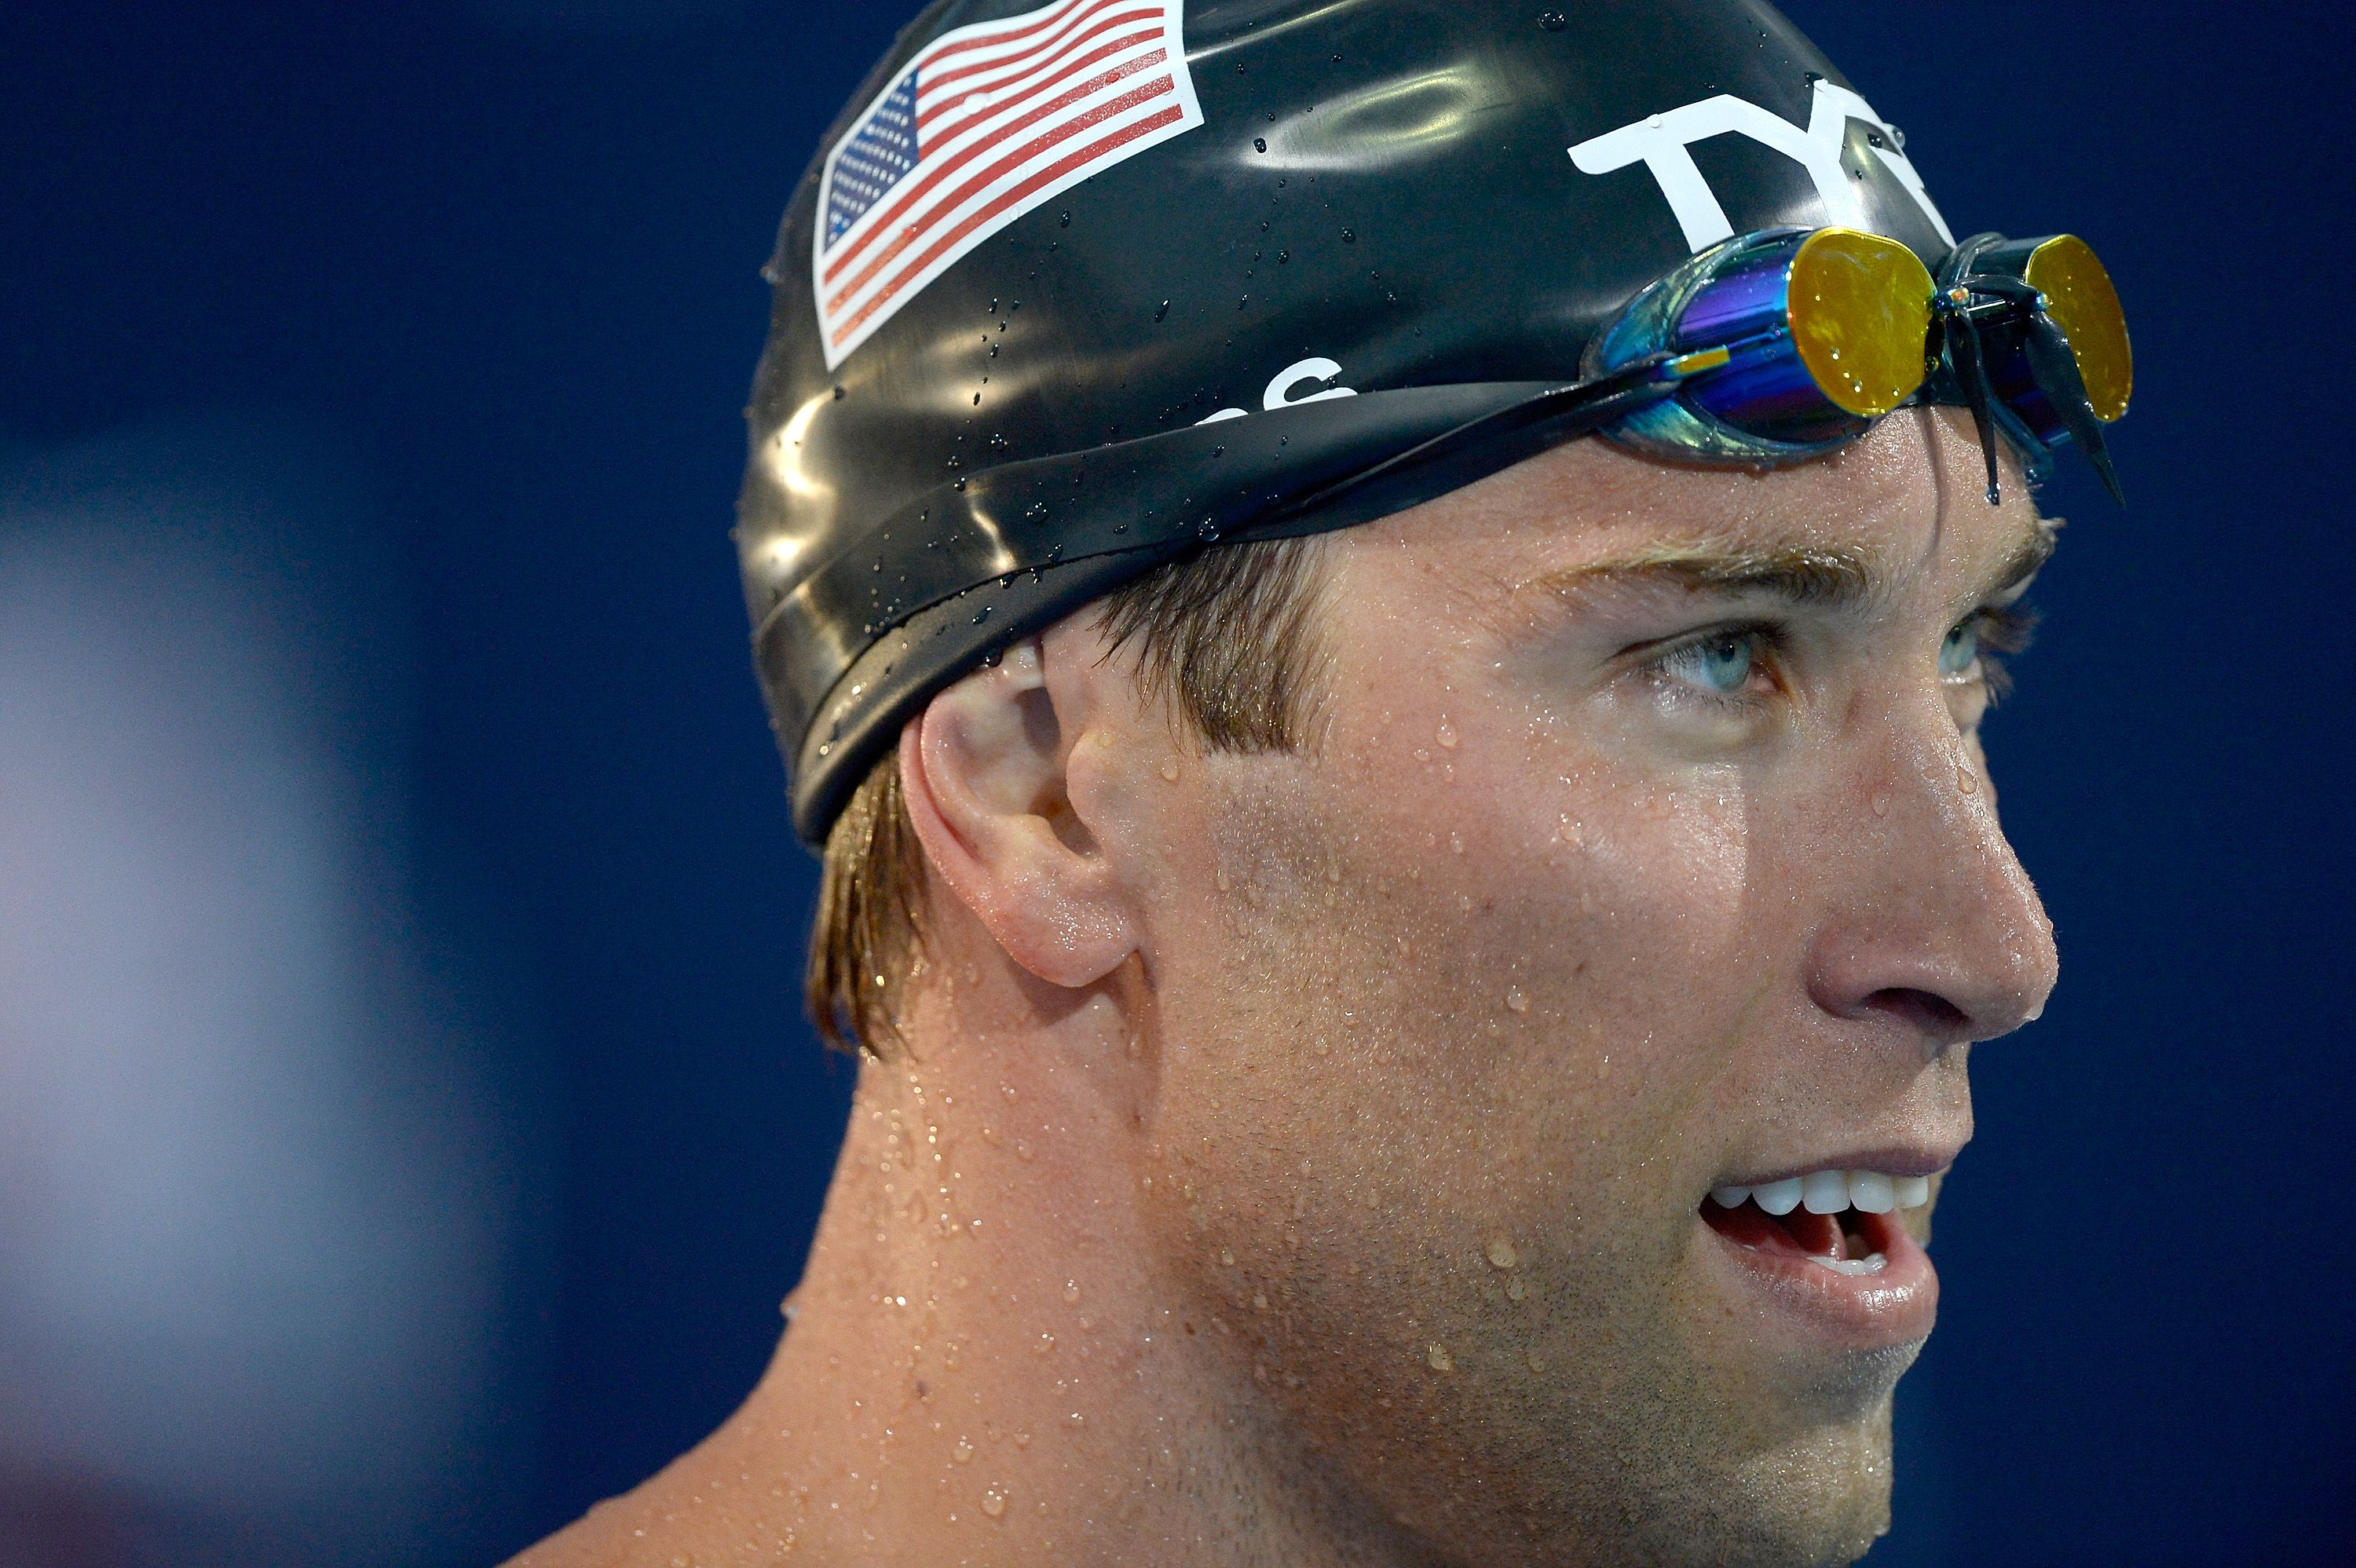 Matt Grevers Wins Michael Phelps Sixth In 100m Back Missy Franklin